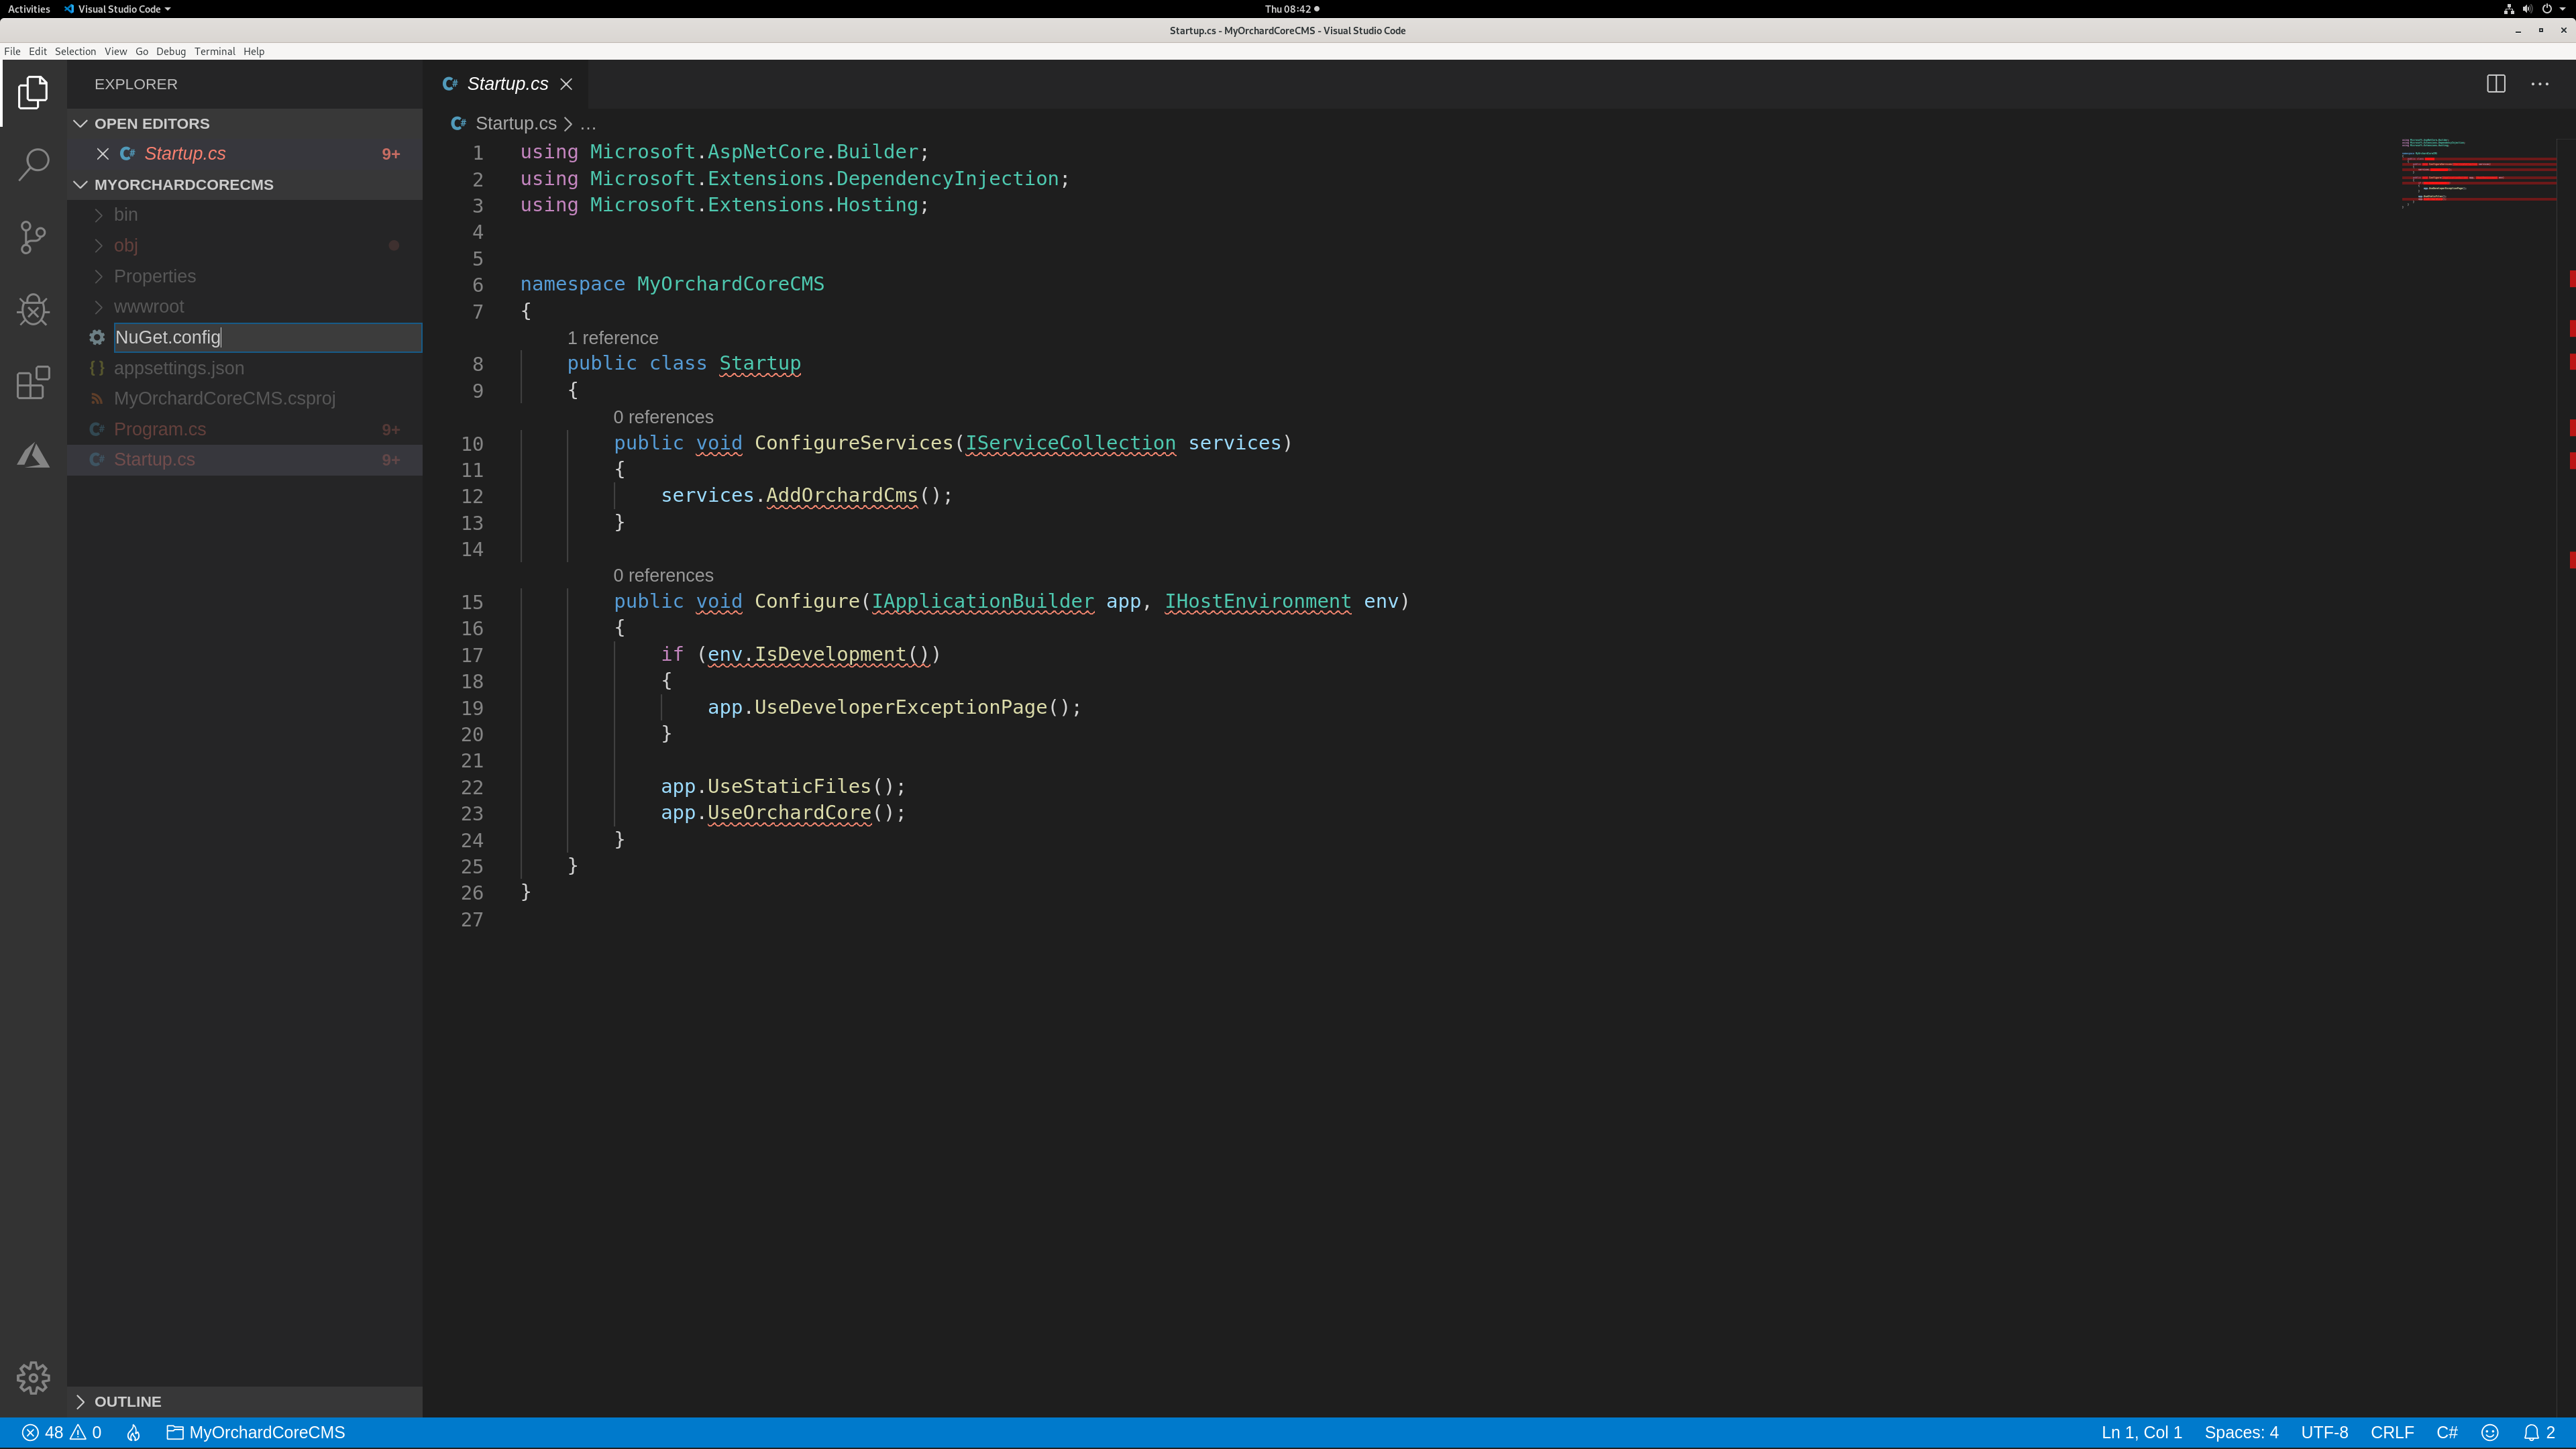 Developing-Orchard-Core-CMS-Applications-Using-Linux-and-VSCode-011